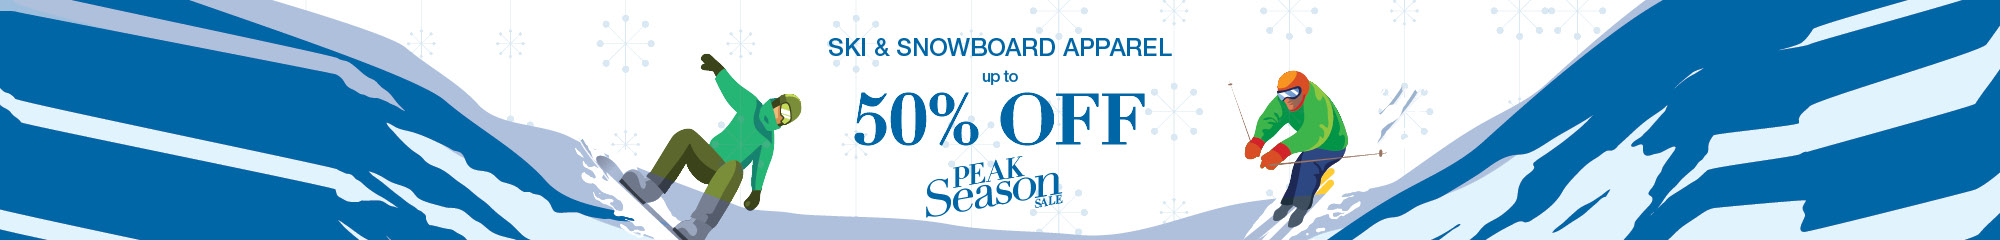 Ski & Snowboard Apparel Up to 50% Off